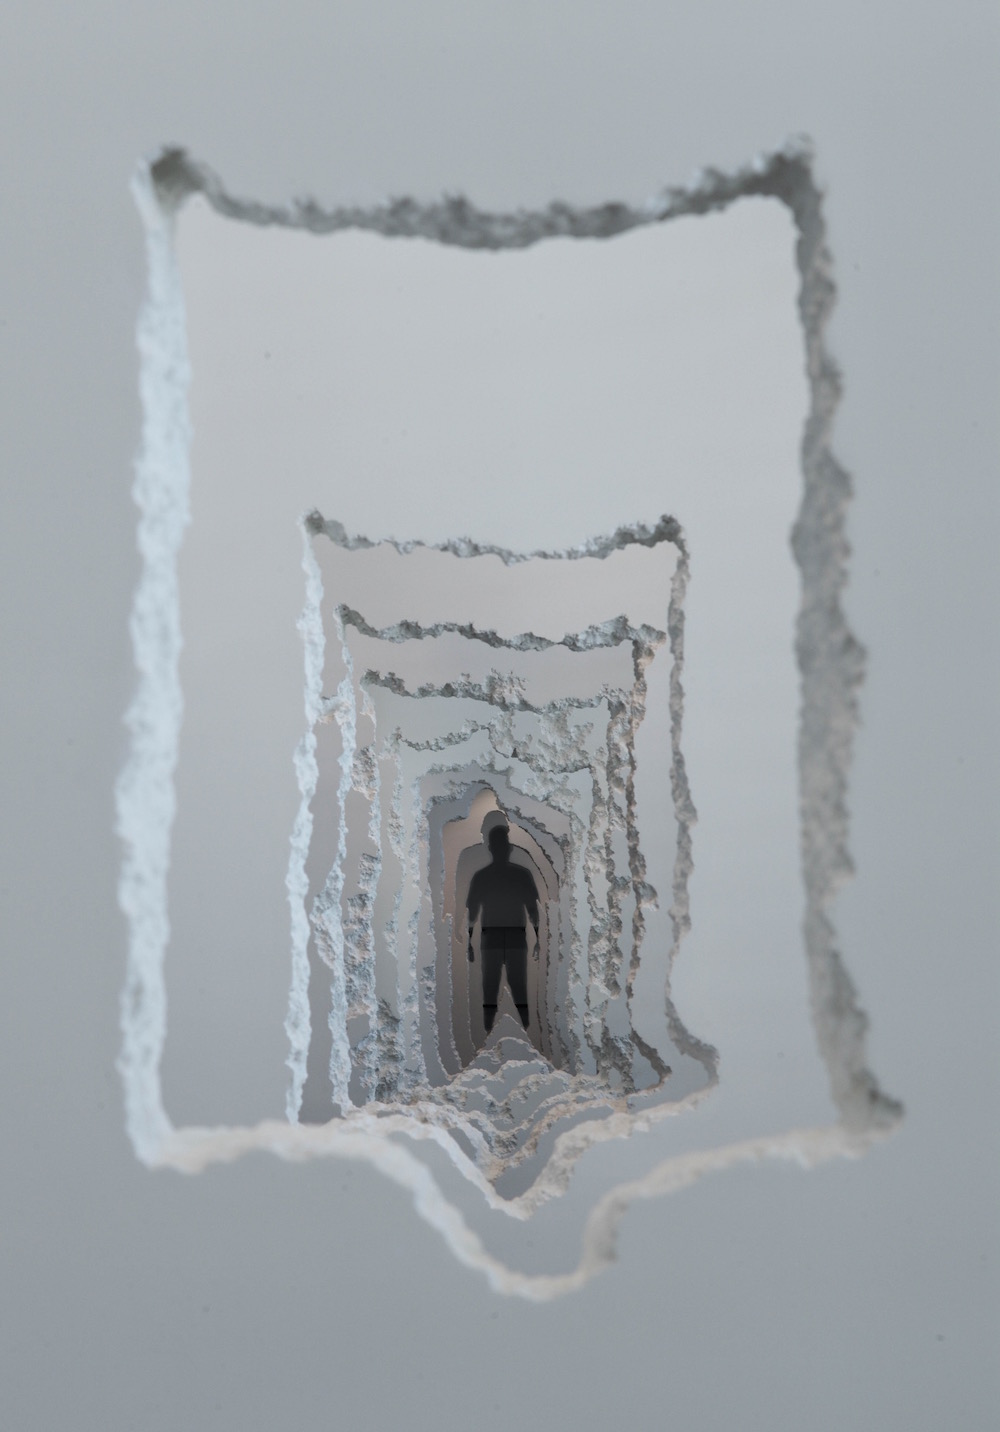 A 300-Foot Tunnel Excavated Through Walls Examines the Creative and Destructive Powers of Mankind